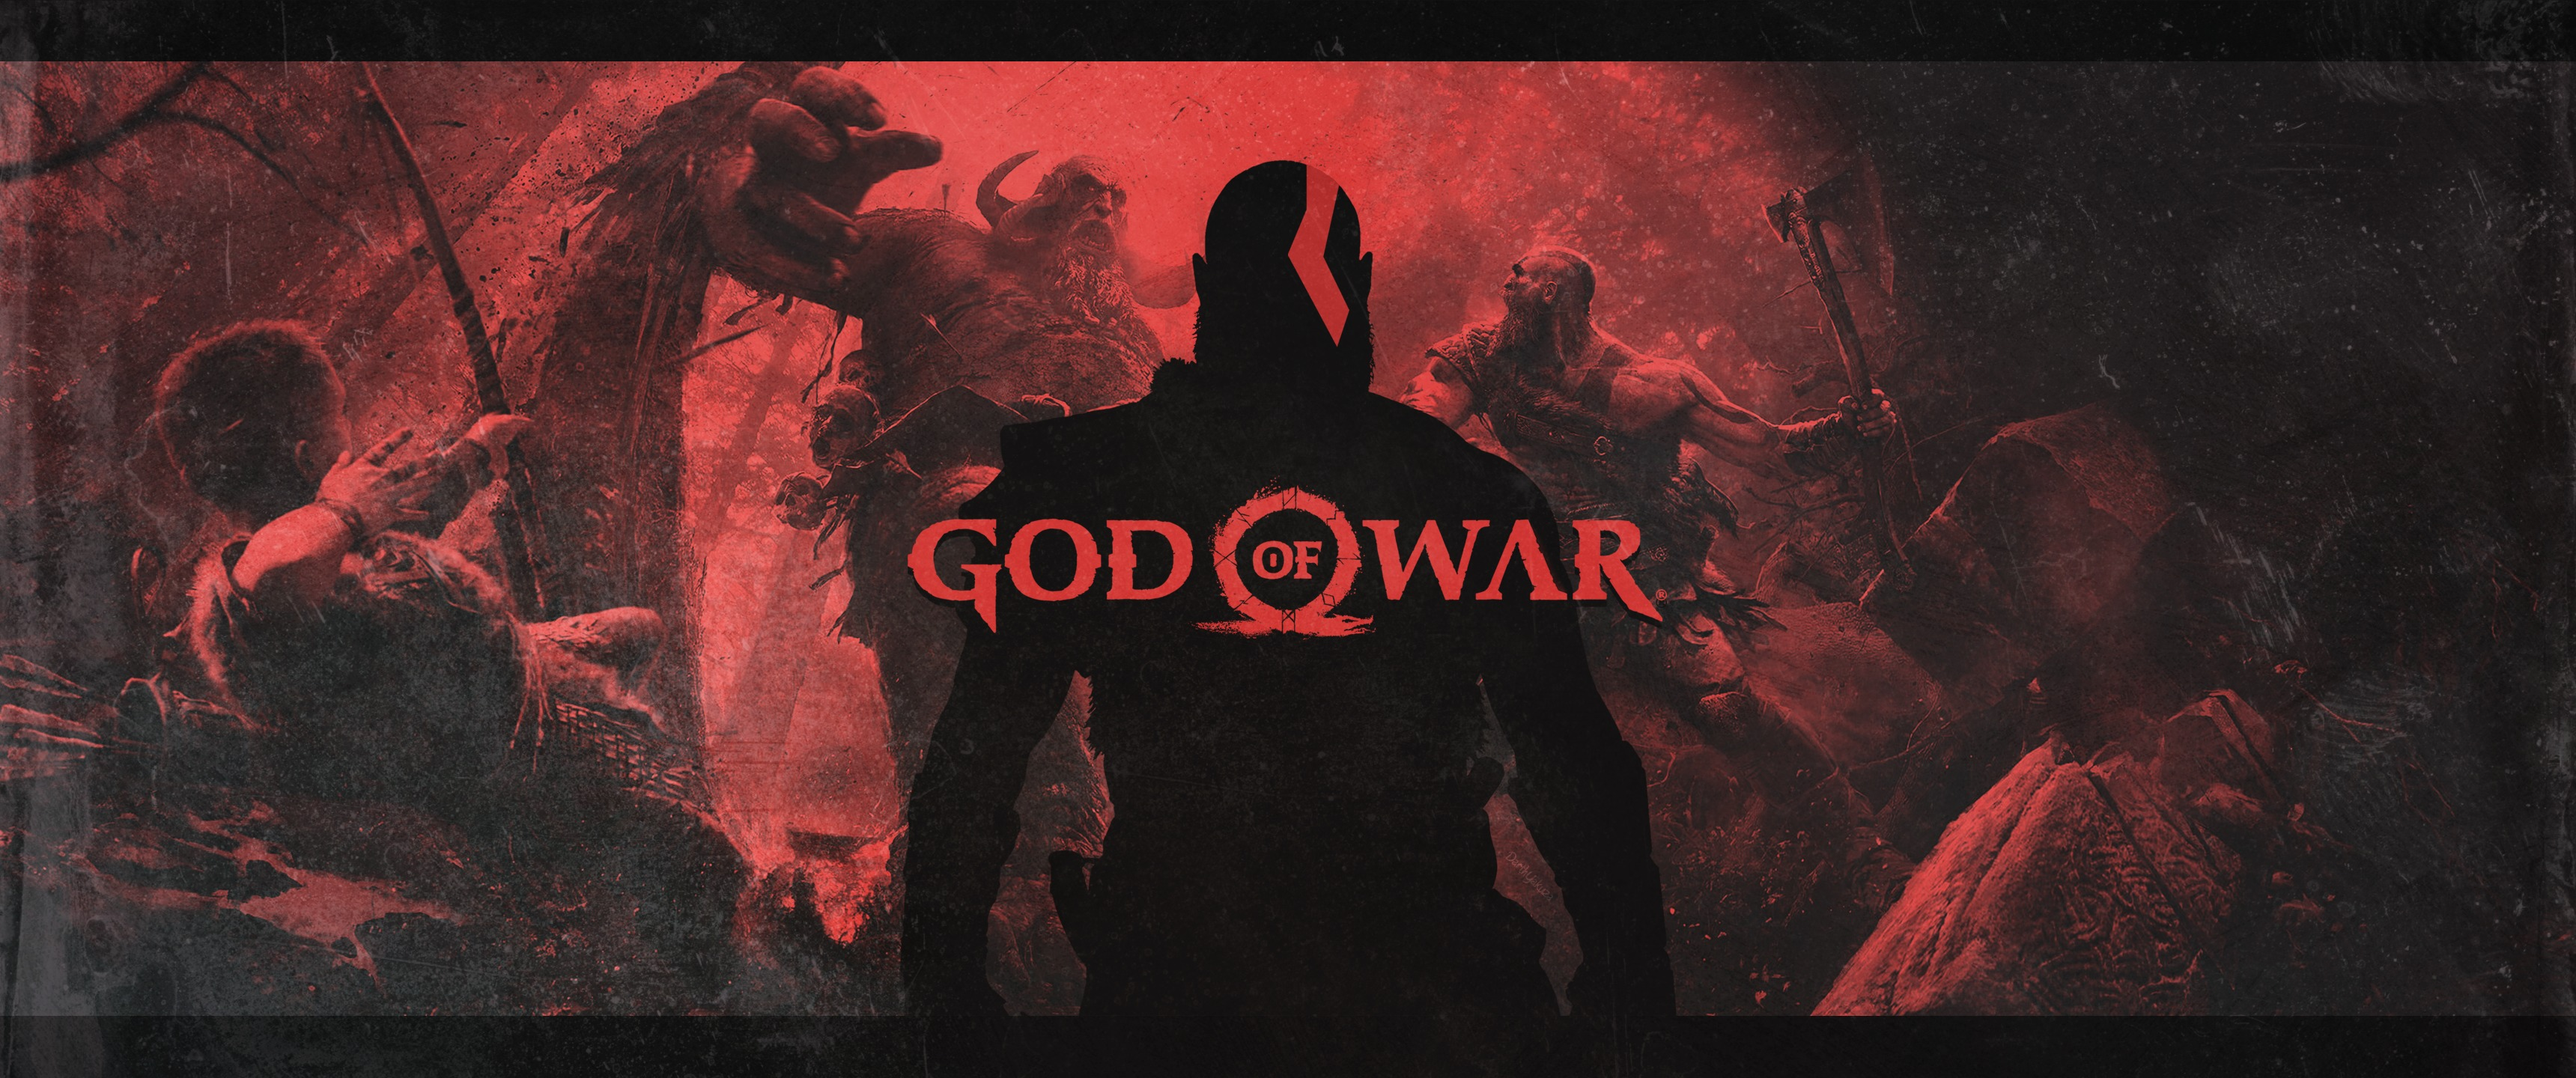 god of war 4 video game poster, hd 4k wallpaper